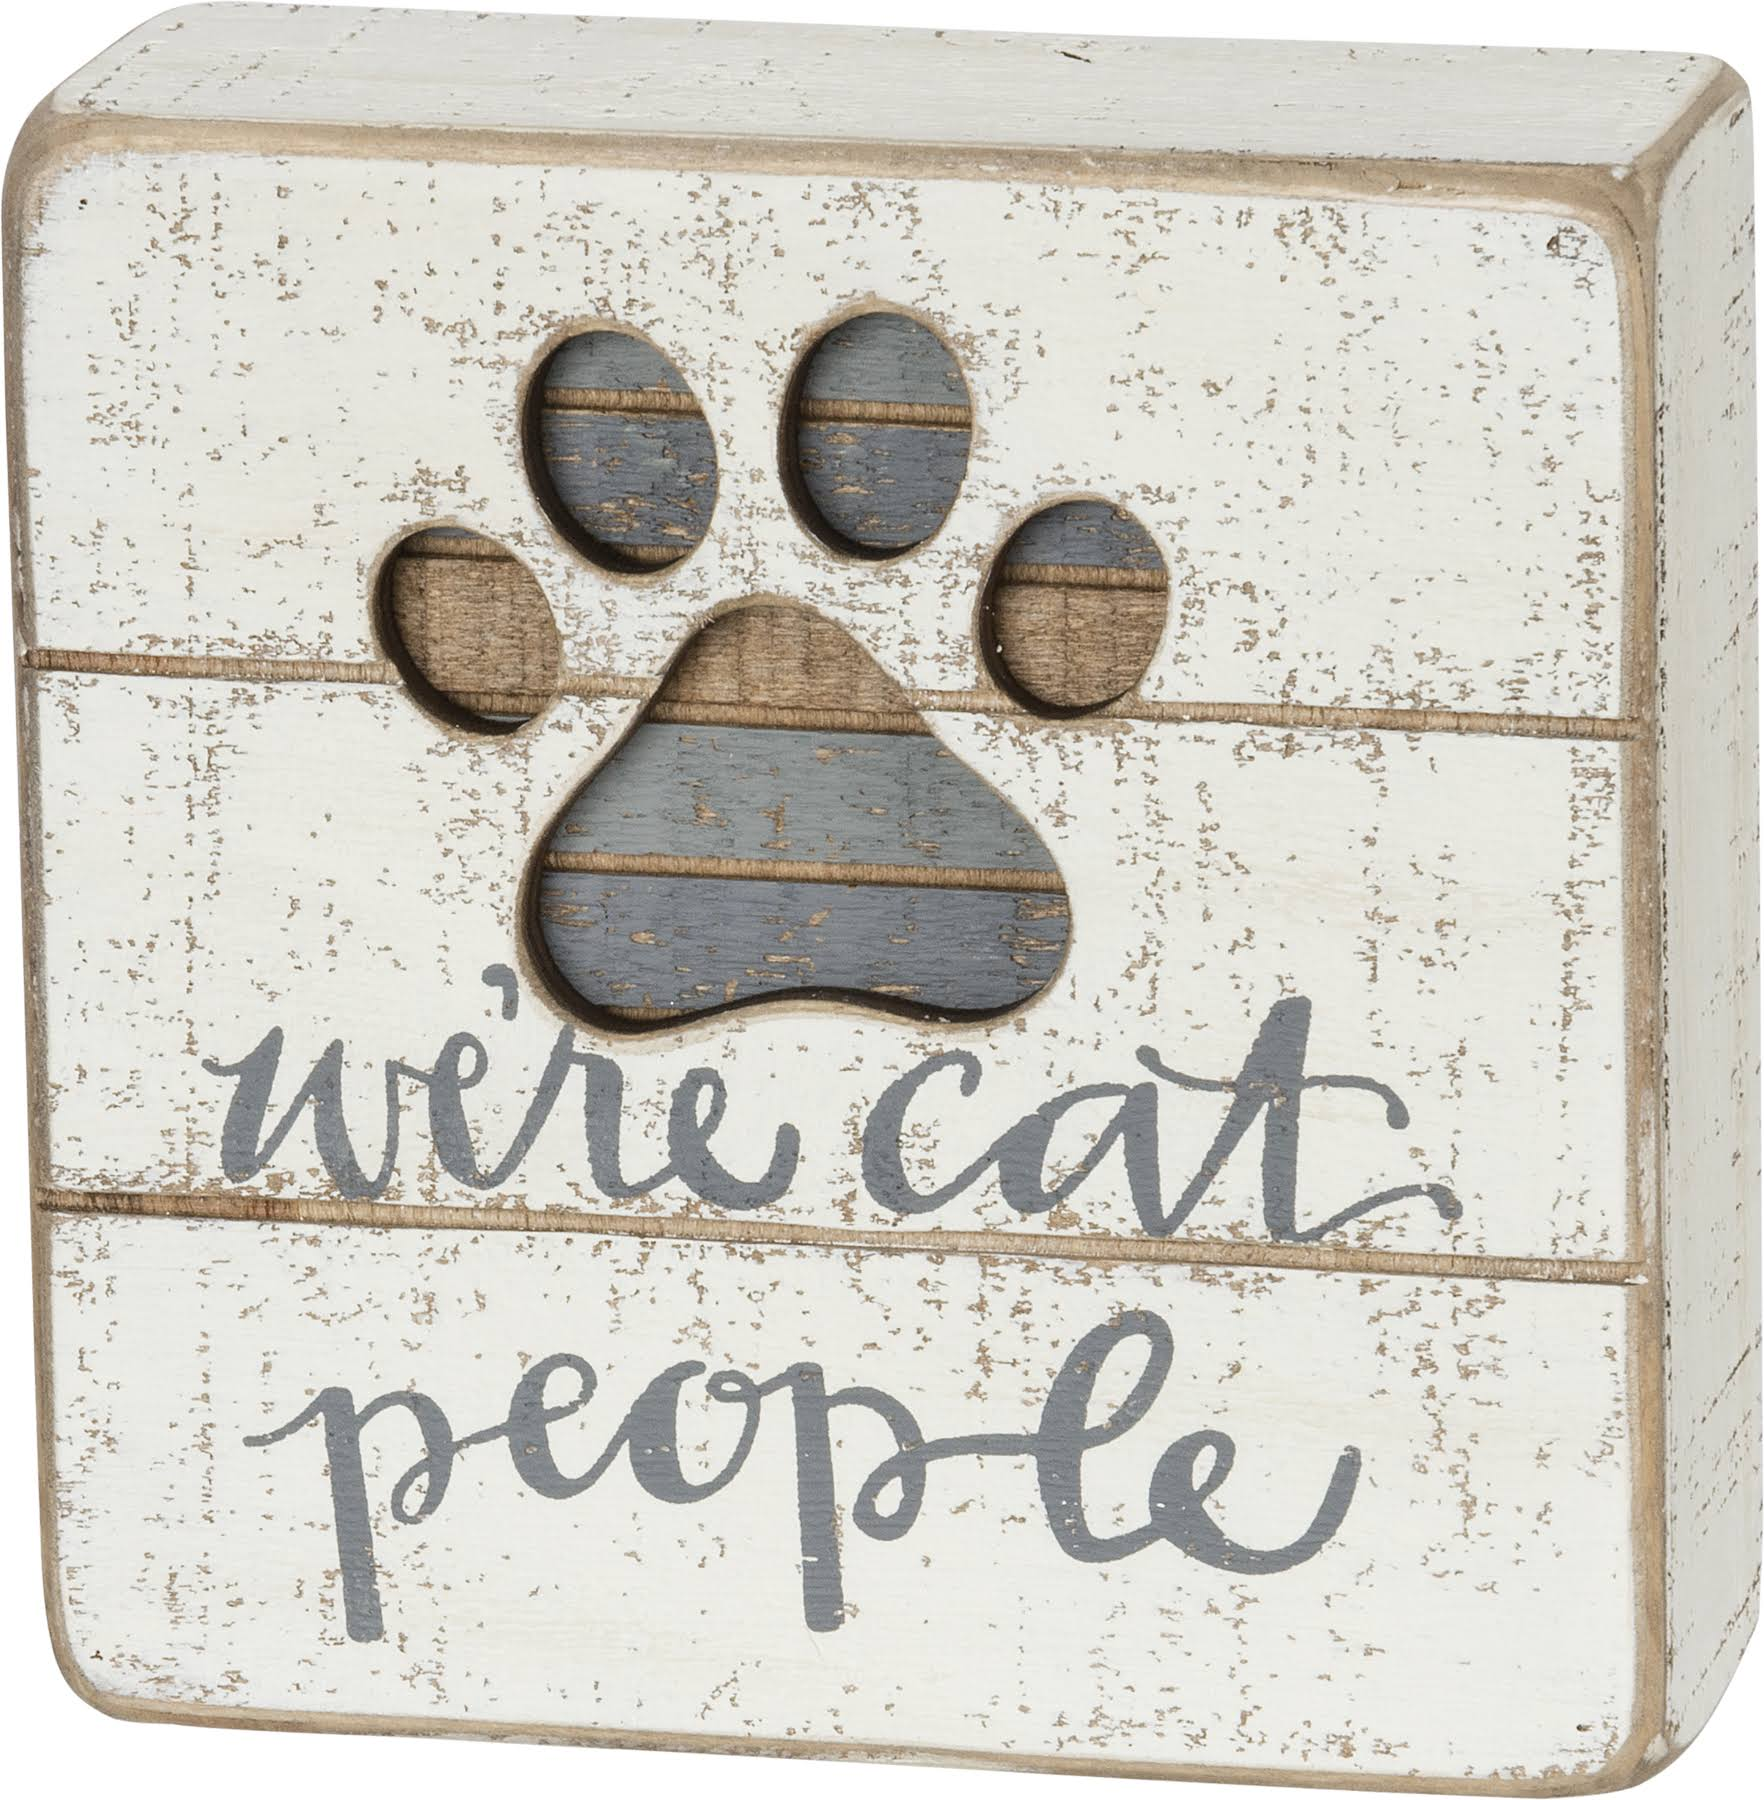 "Primitives By Kathy Box Sign - ""We're Cat People With Paw Print"", 5"" x 5"""